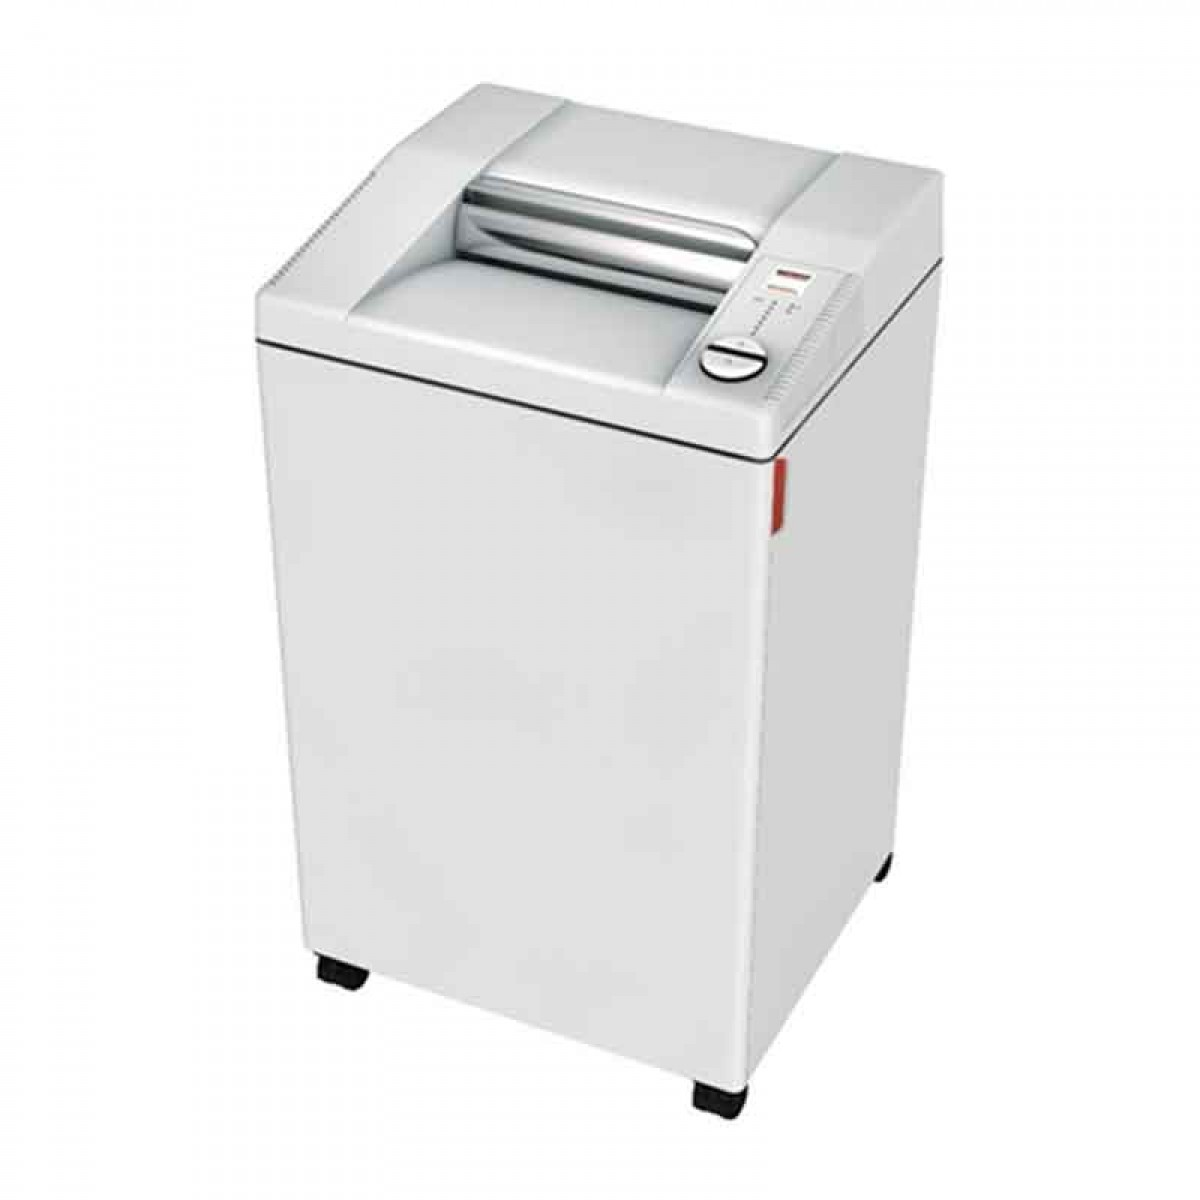 MBM 2604 Series Destroyit Paper Shredder